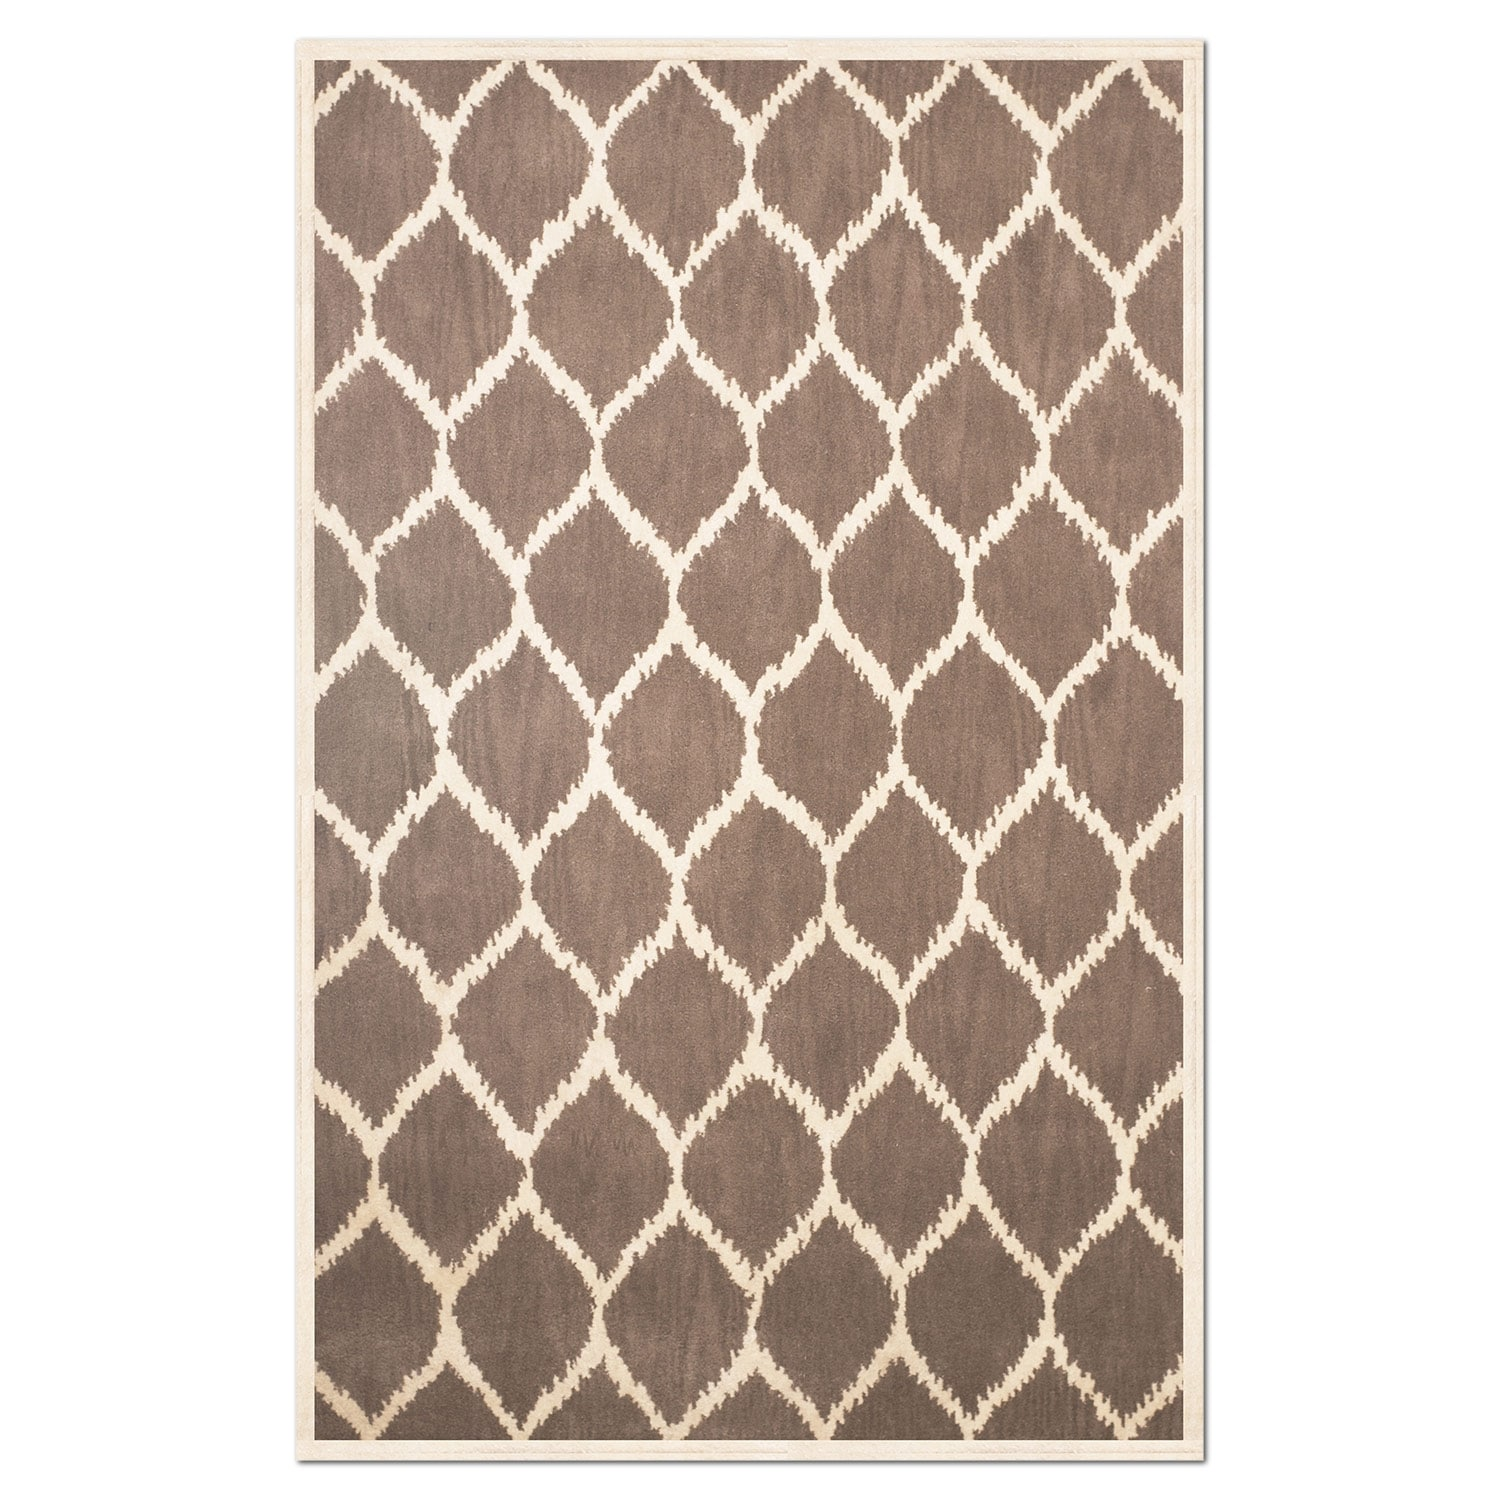 Rugs - Kimble Area Rug (5' x 8')